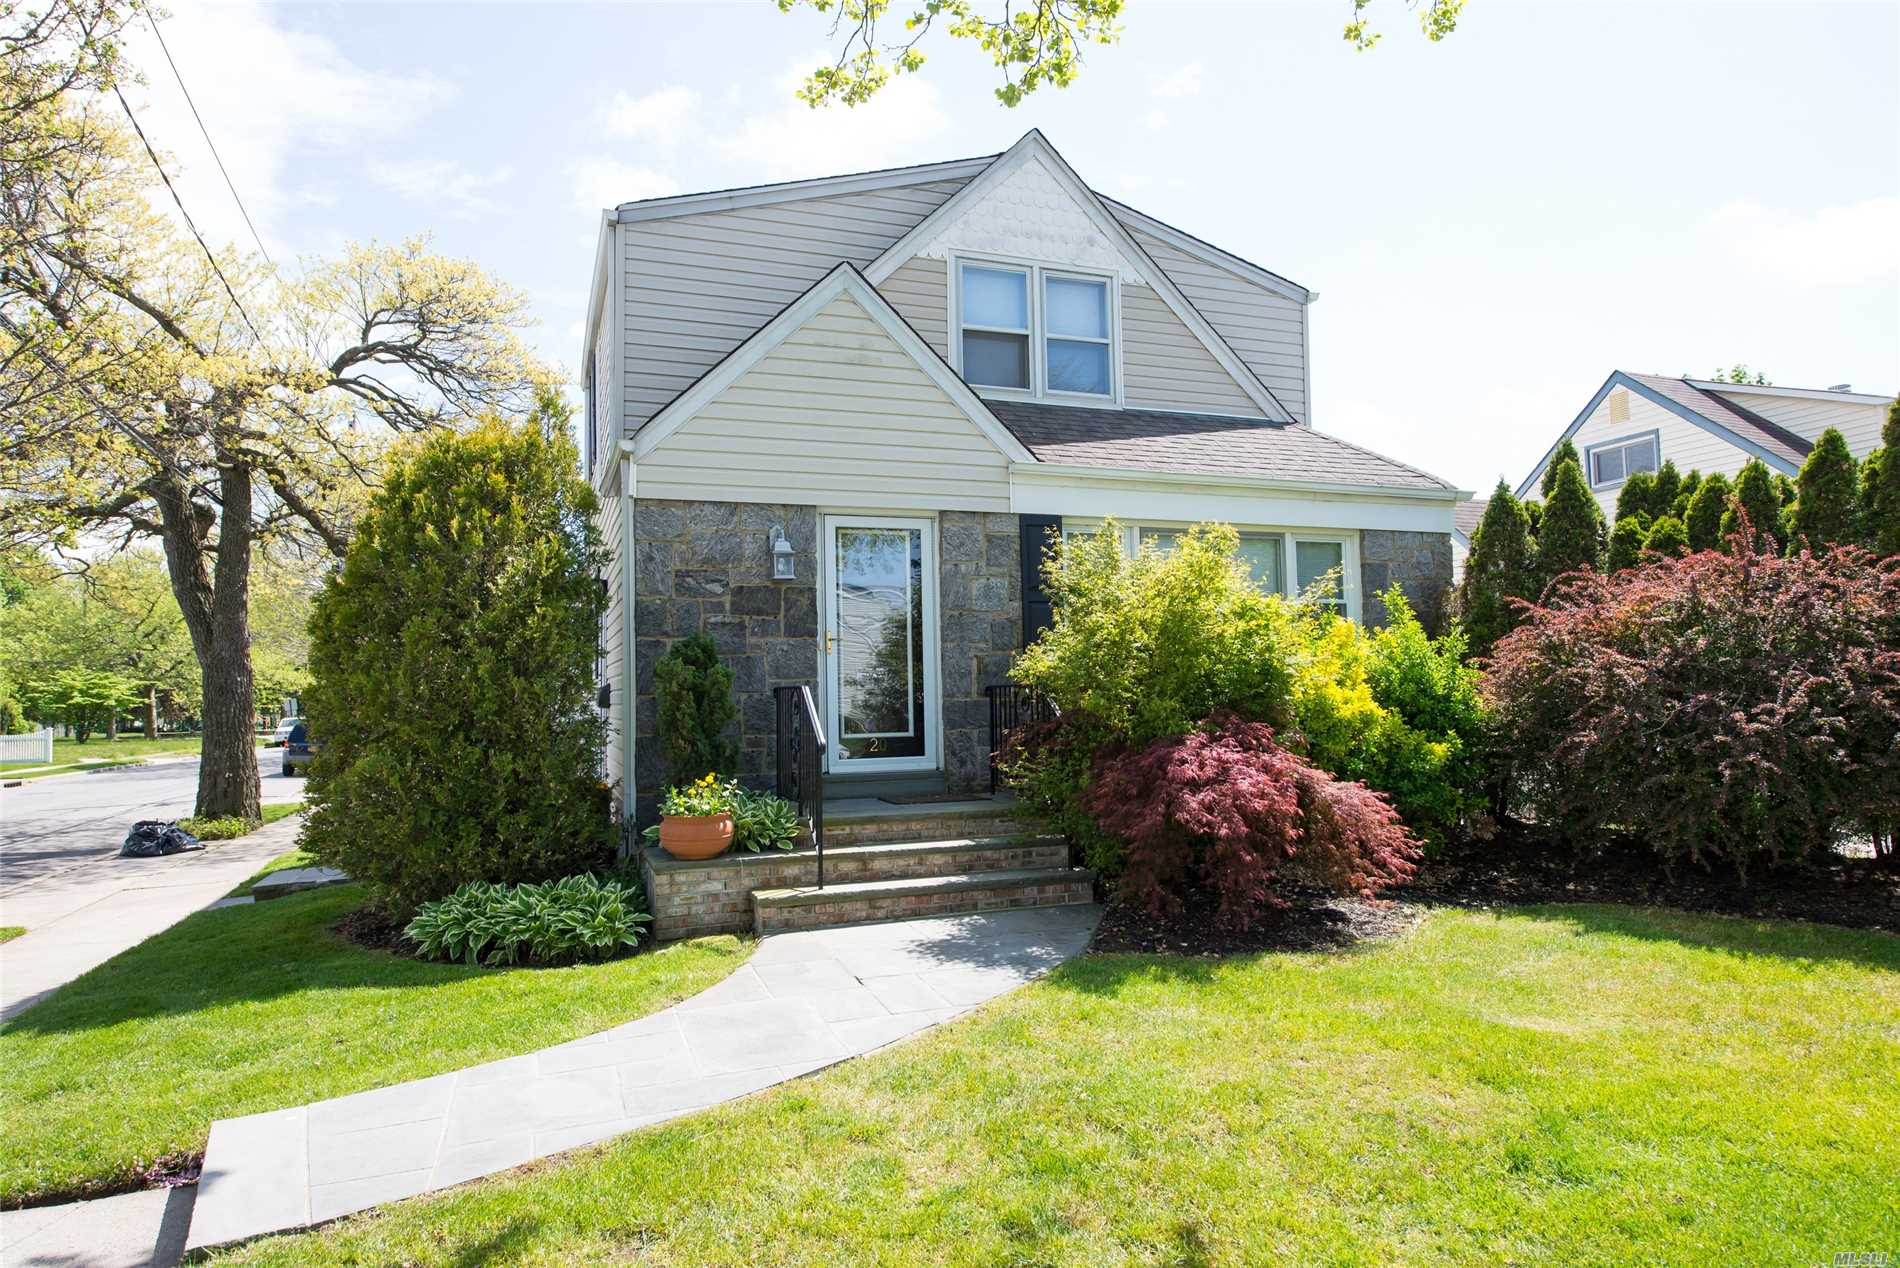 Nicely Updated Cape In Convenient Location Close To Lirr Shopping, & Highways. 3 Large Bedrooms, 2 Full Bths, Wood Floors, Oil Heat, Gas Cooking,  All Fenced Rear Deck. 1 Car Garage W/ Driveway, Must See!! Tenant In Basement Apartment With Separate Entrance. Use Of Partial Basement And Shared Laundry Room. Landlord Pays Landscaping And Water.